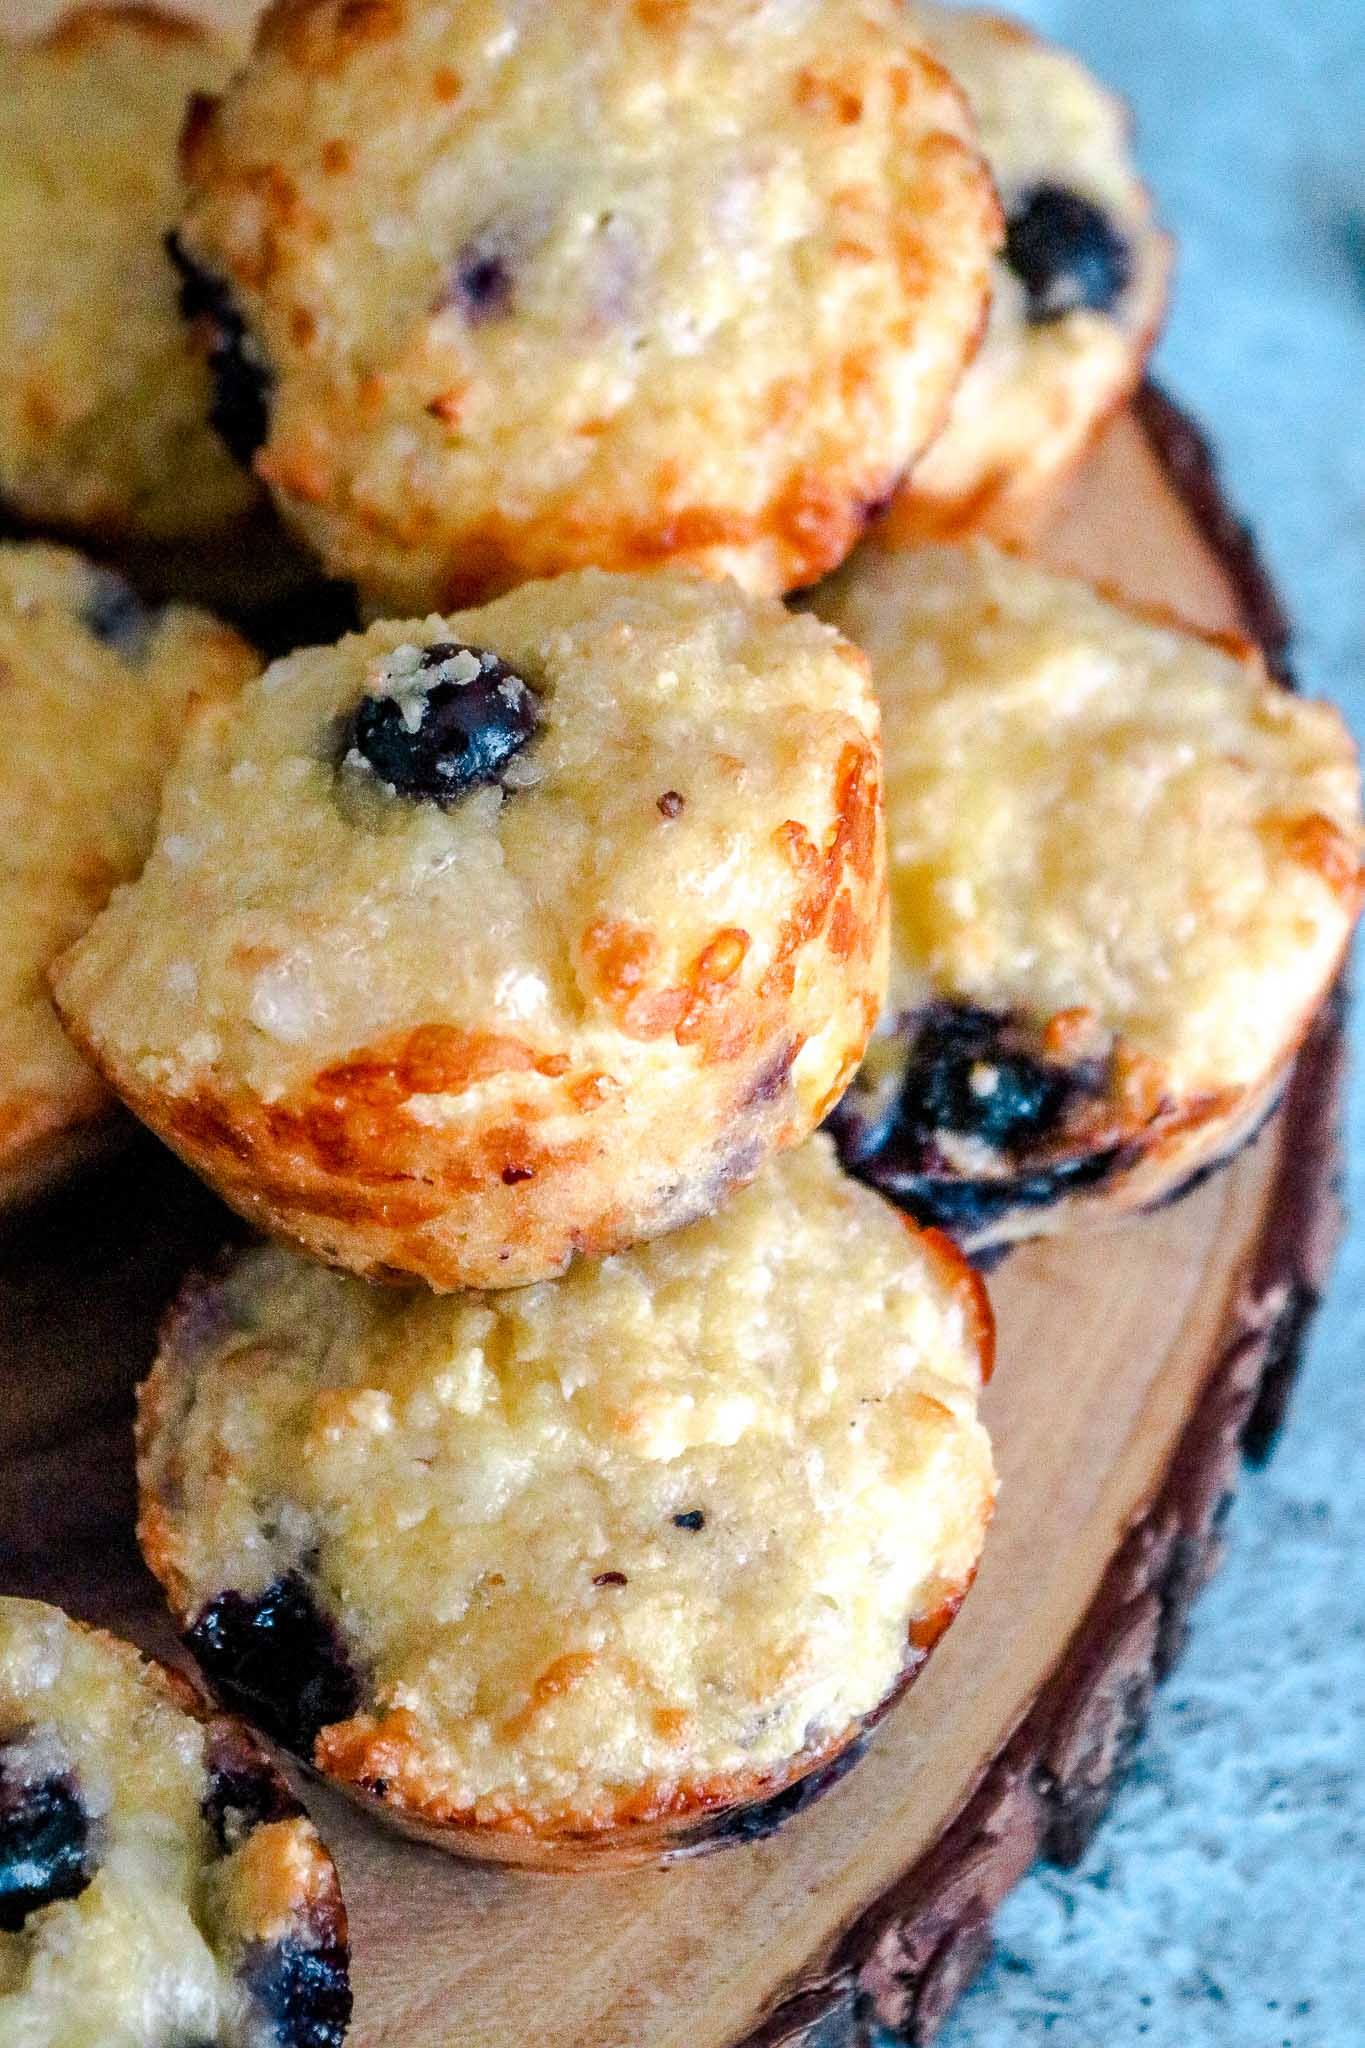 A wooden board with blueberry muffins stacked on it.